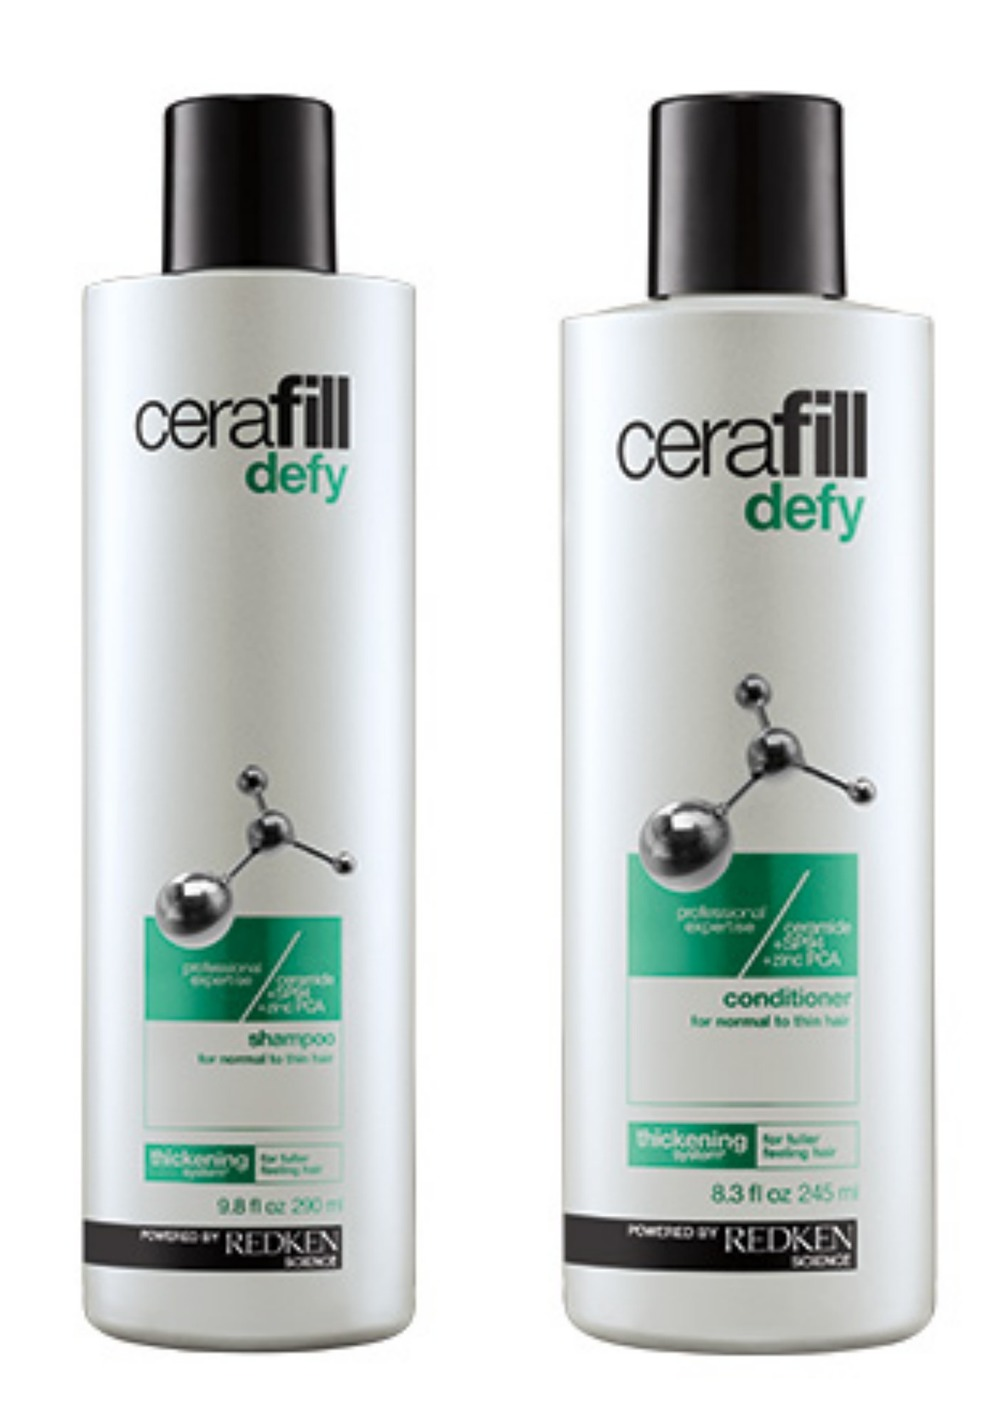 Redken Cerafill Defy Shampoon + Conditioner for Fine Hair